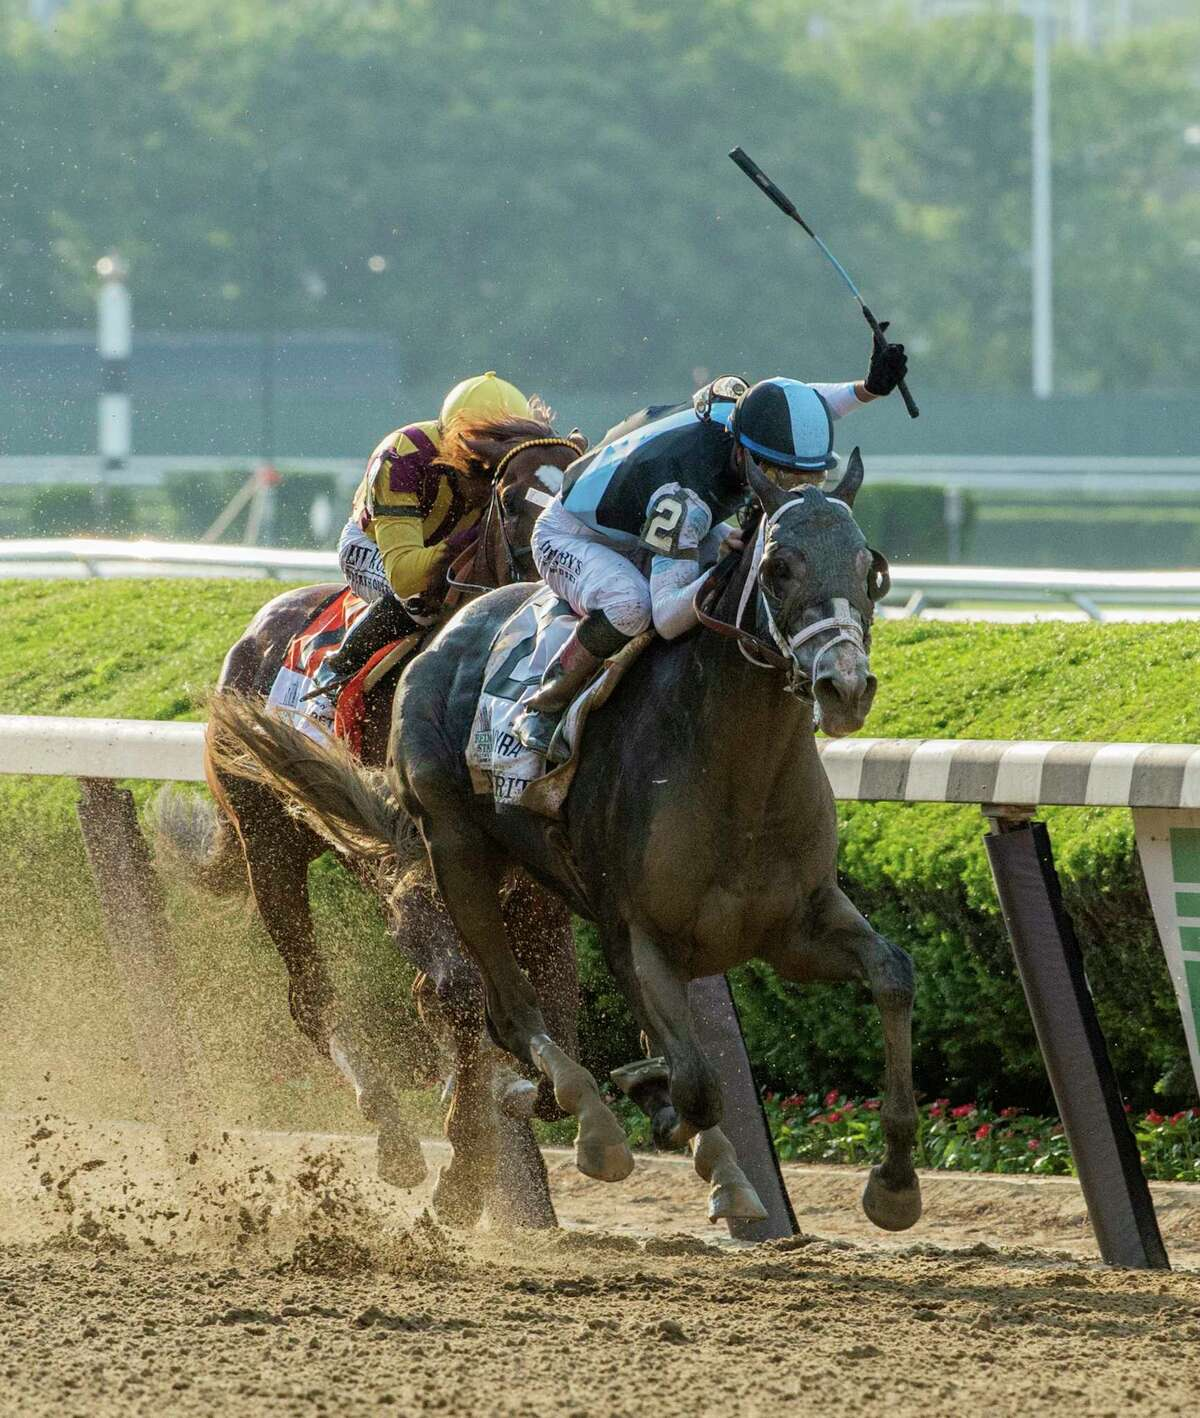 Tapwrit ridden by Jose Ortiz, passes Irish War Cry ridden by Rajiv Maragh to the win in the 149th running of the Belmont Stakes at Belmont Park June 10, 2017 in Elmont, N.Y. (Skip Dickstein/Times Union)